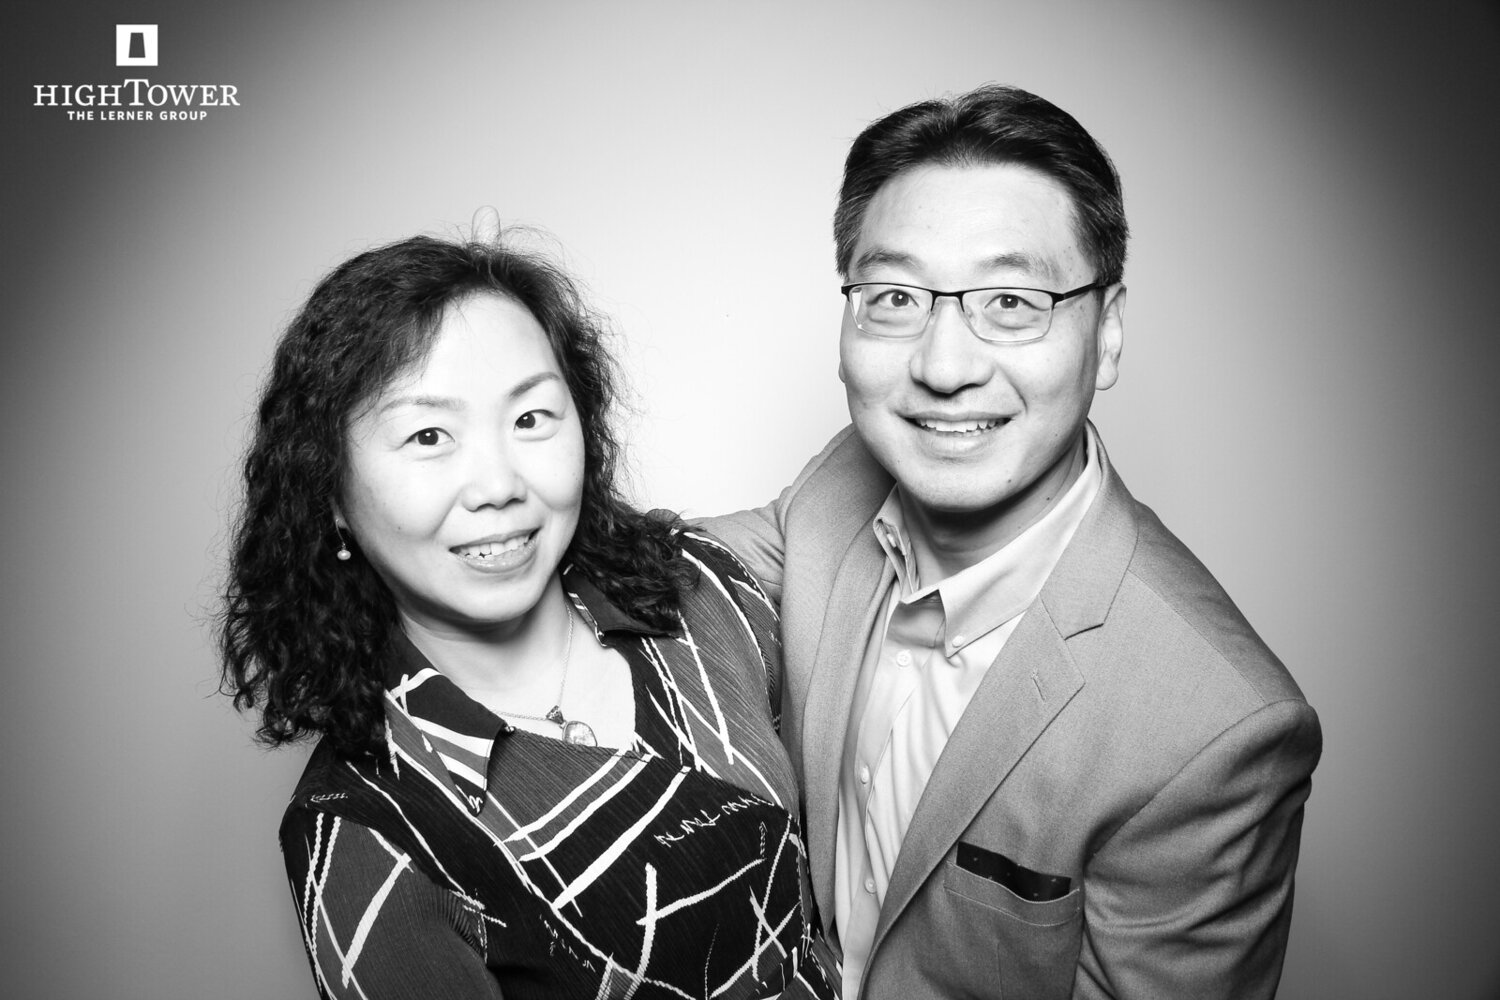 Chicago_Vintage_Wedding_Photobooth_Company_Party_07.jpg